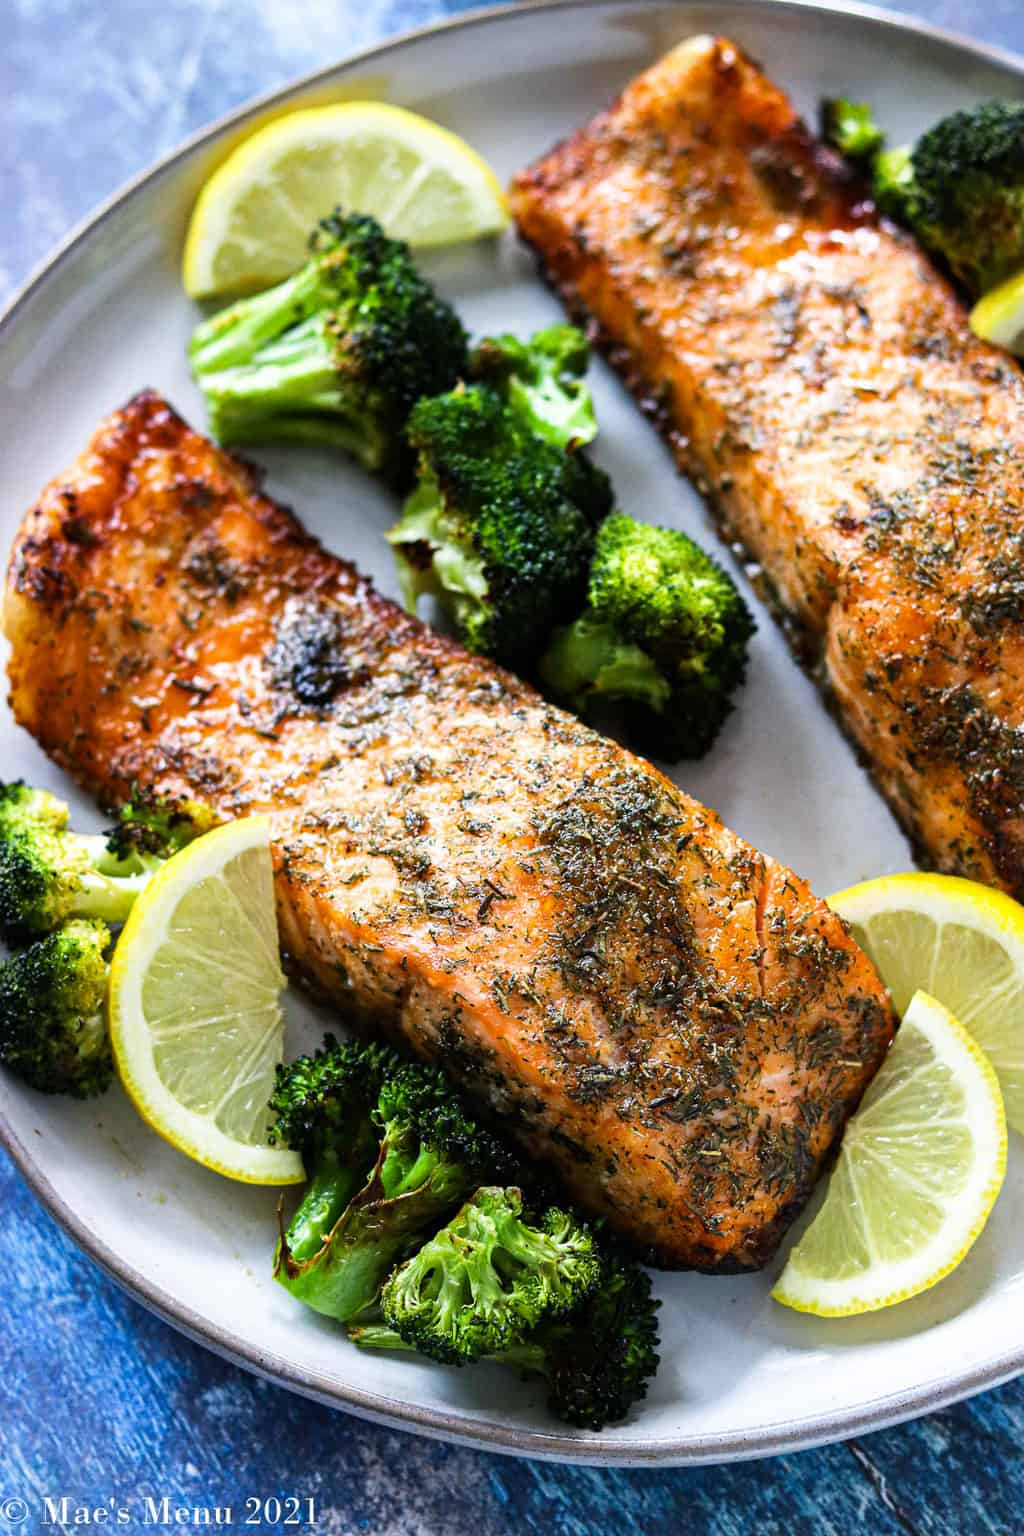 Two large pieces of air fryer salmon on a serving plater with broccoli and lemons